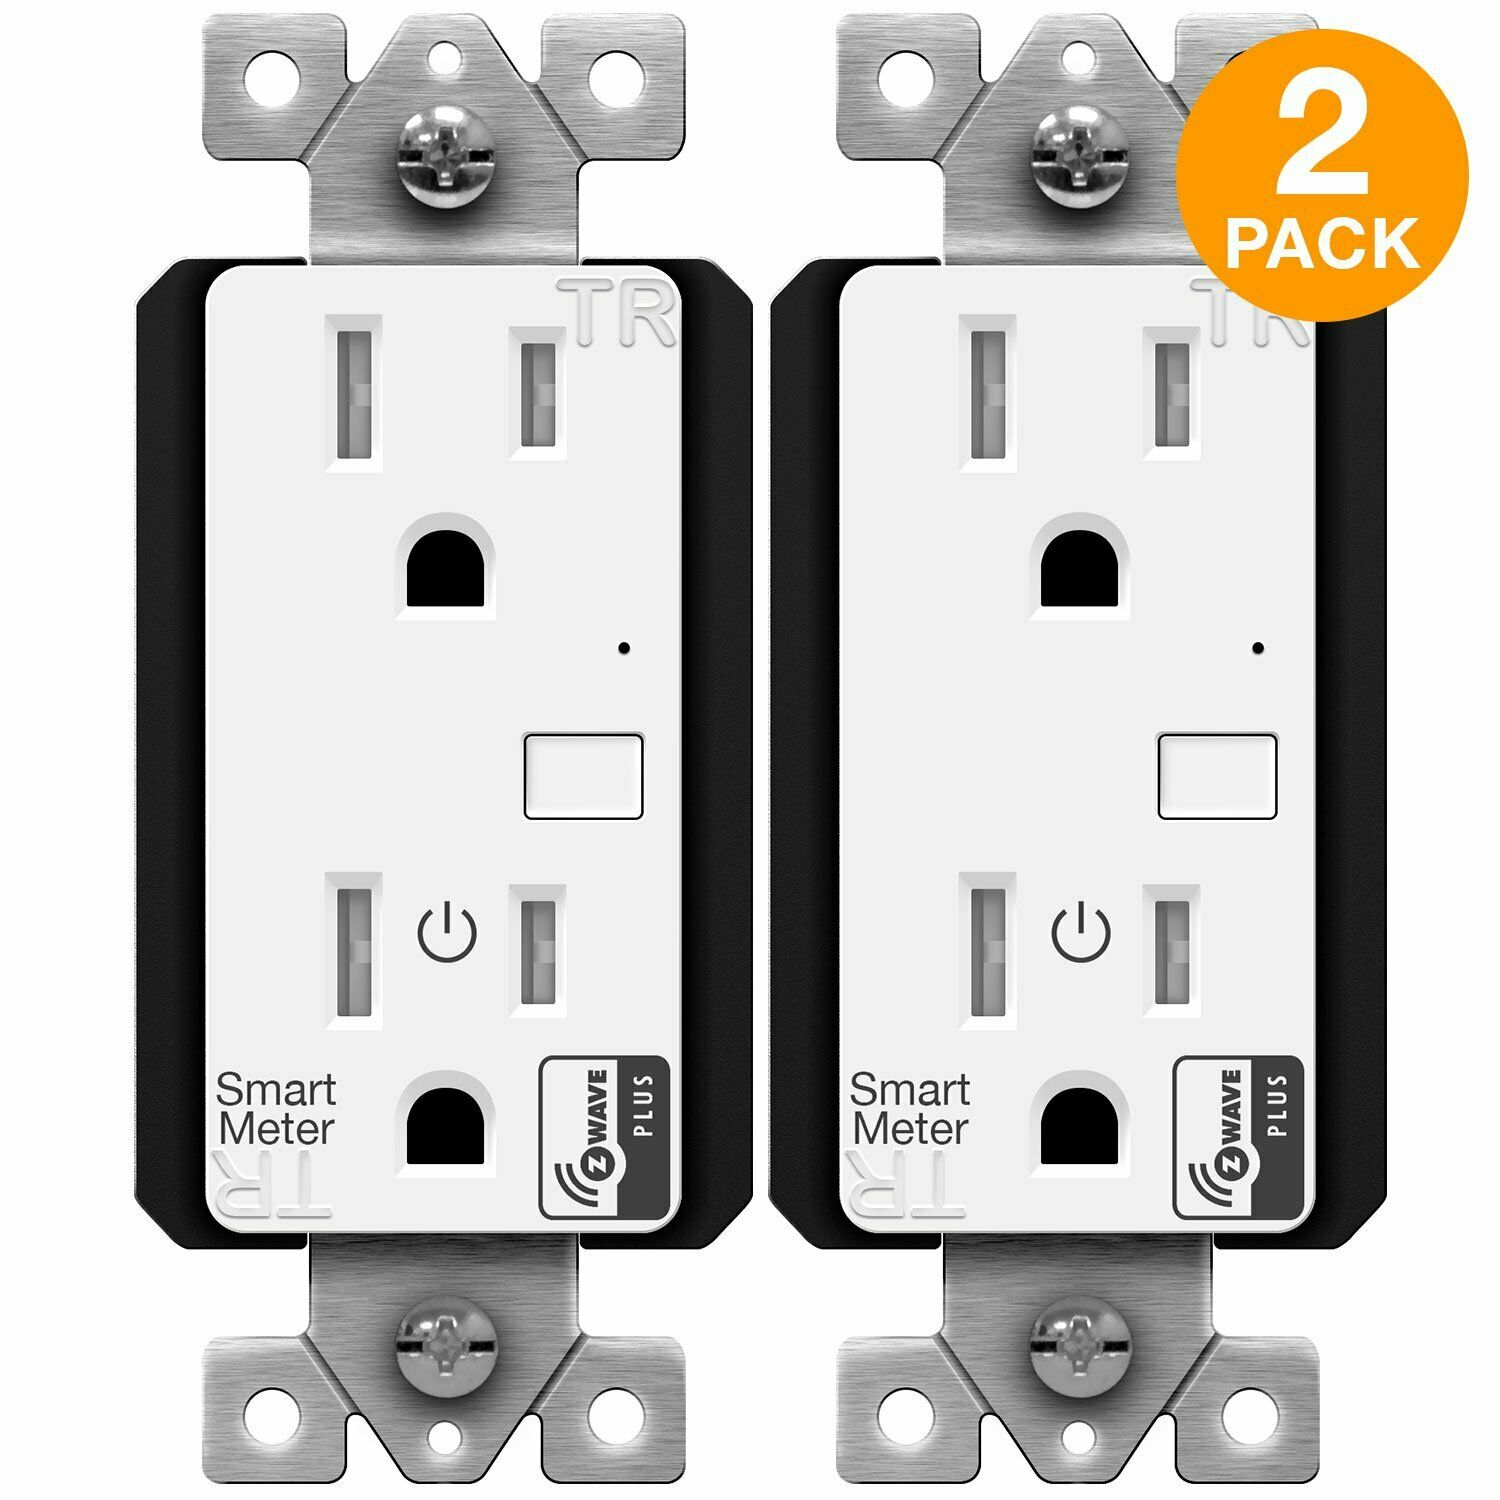 как выглядит ENERWAVE Z-Wave Plus Wall Outlet with Smart Meter Energy Monitor, 2-Pack фото